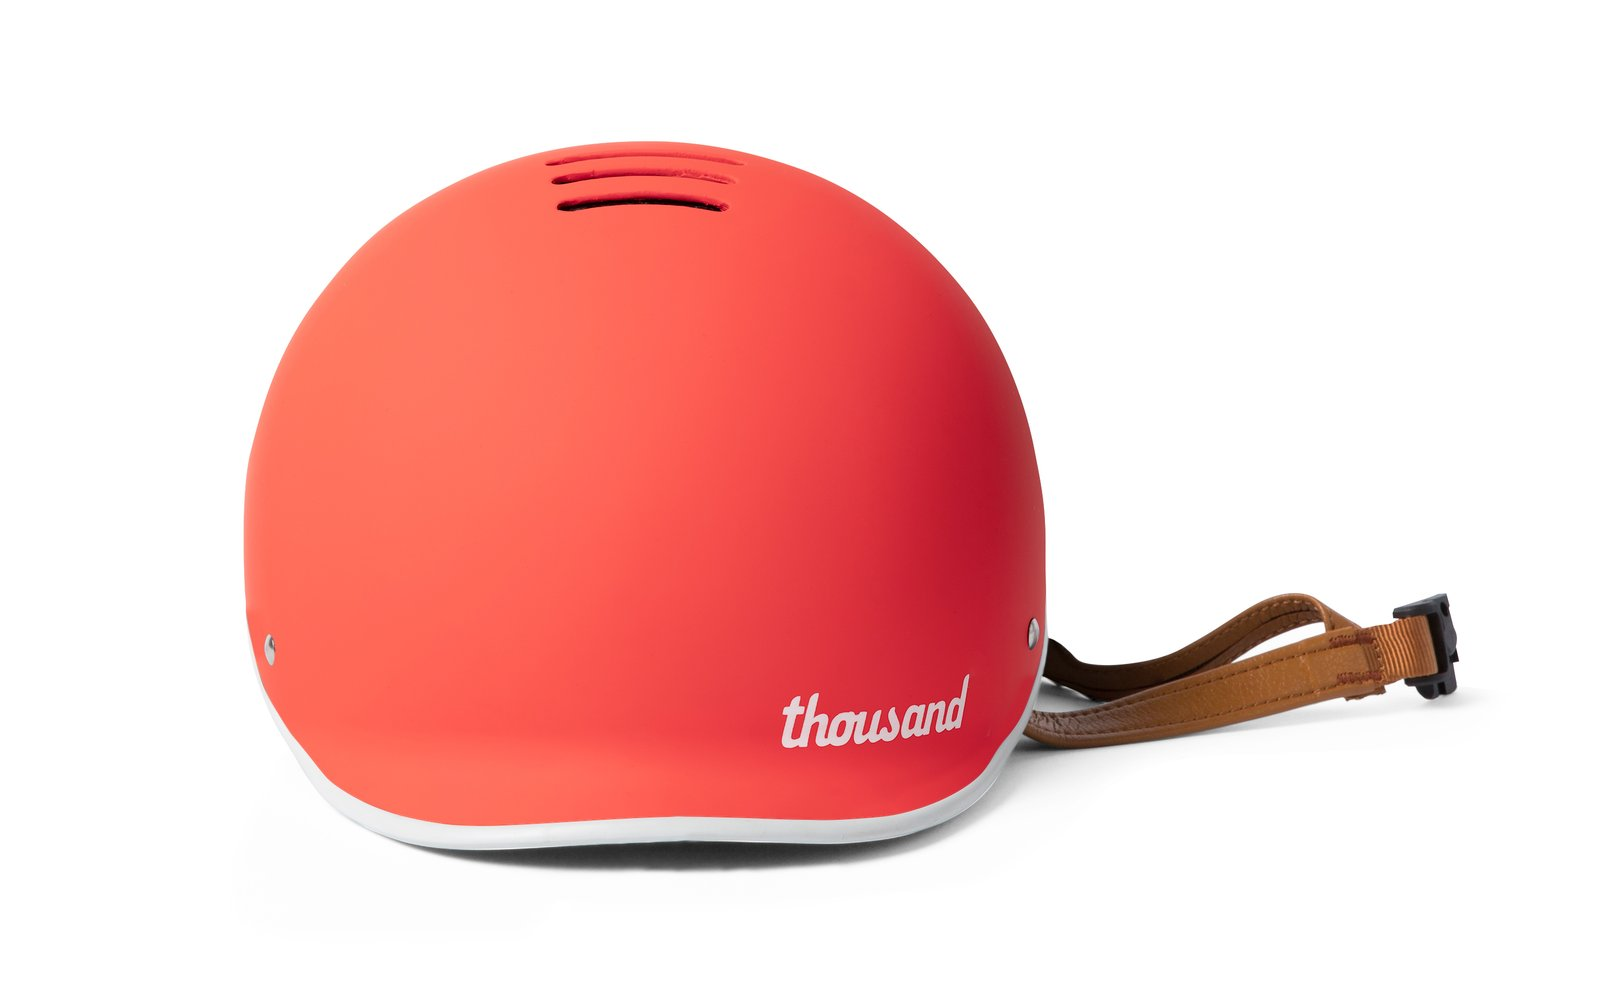 Casco Thousand Daybreak Red